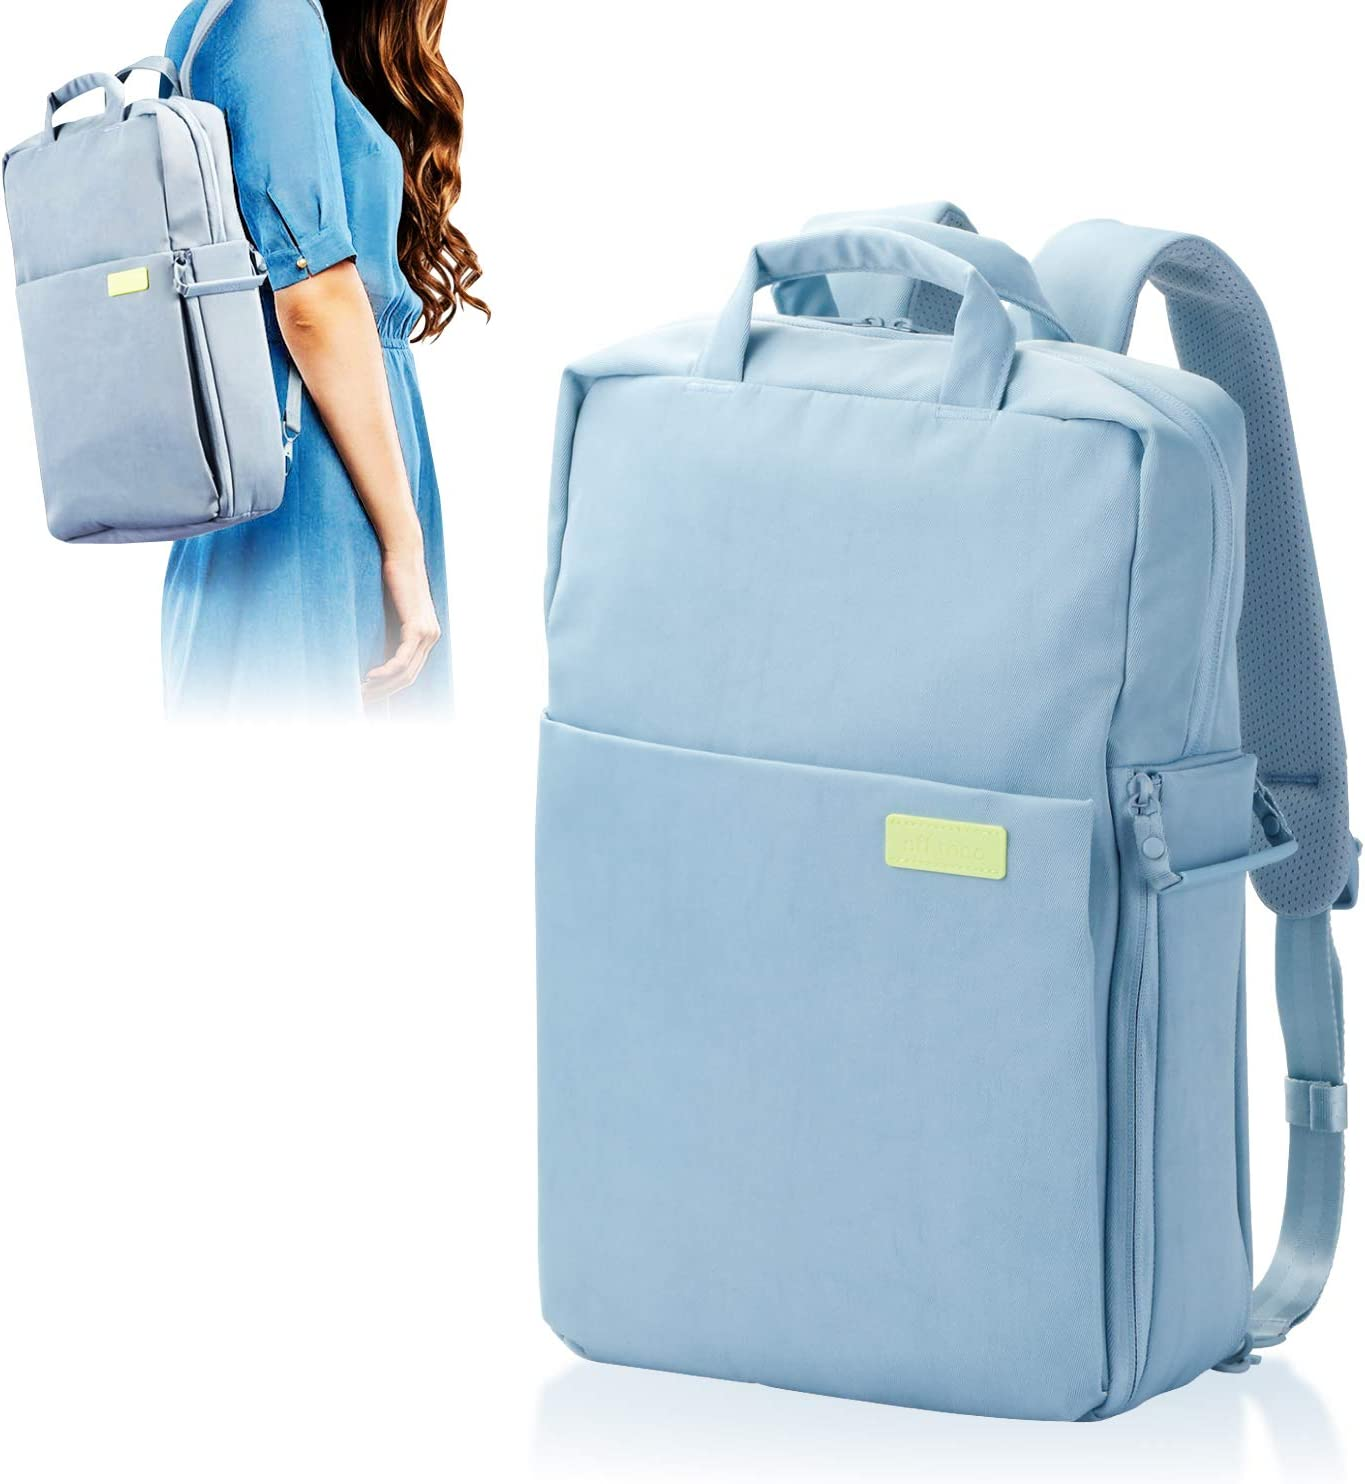 ELECOM Offtoco 2WAY Laptop Sleeve Backpack, Handbag, Limited Color Model, Multiple Inner Pockets, Water Repellent Finish, Support Up to 13.3 inch/ICY Blue/BM-OF04BU